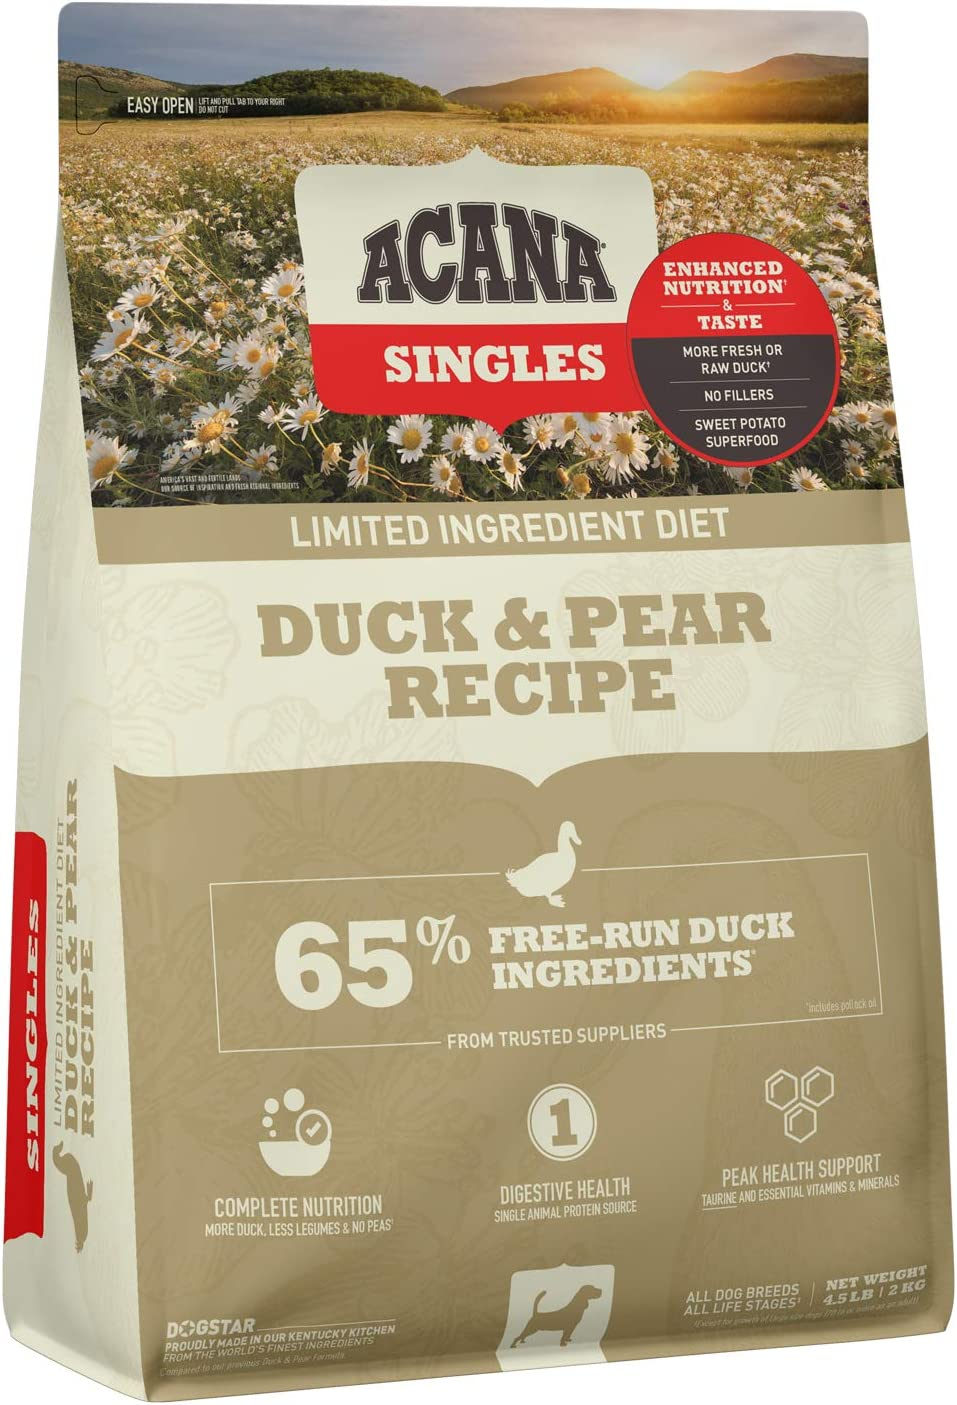 Acana Singles Limited Ingredient Dry Dog Food, High Protein, Complete Nutrition, Digestive Health